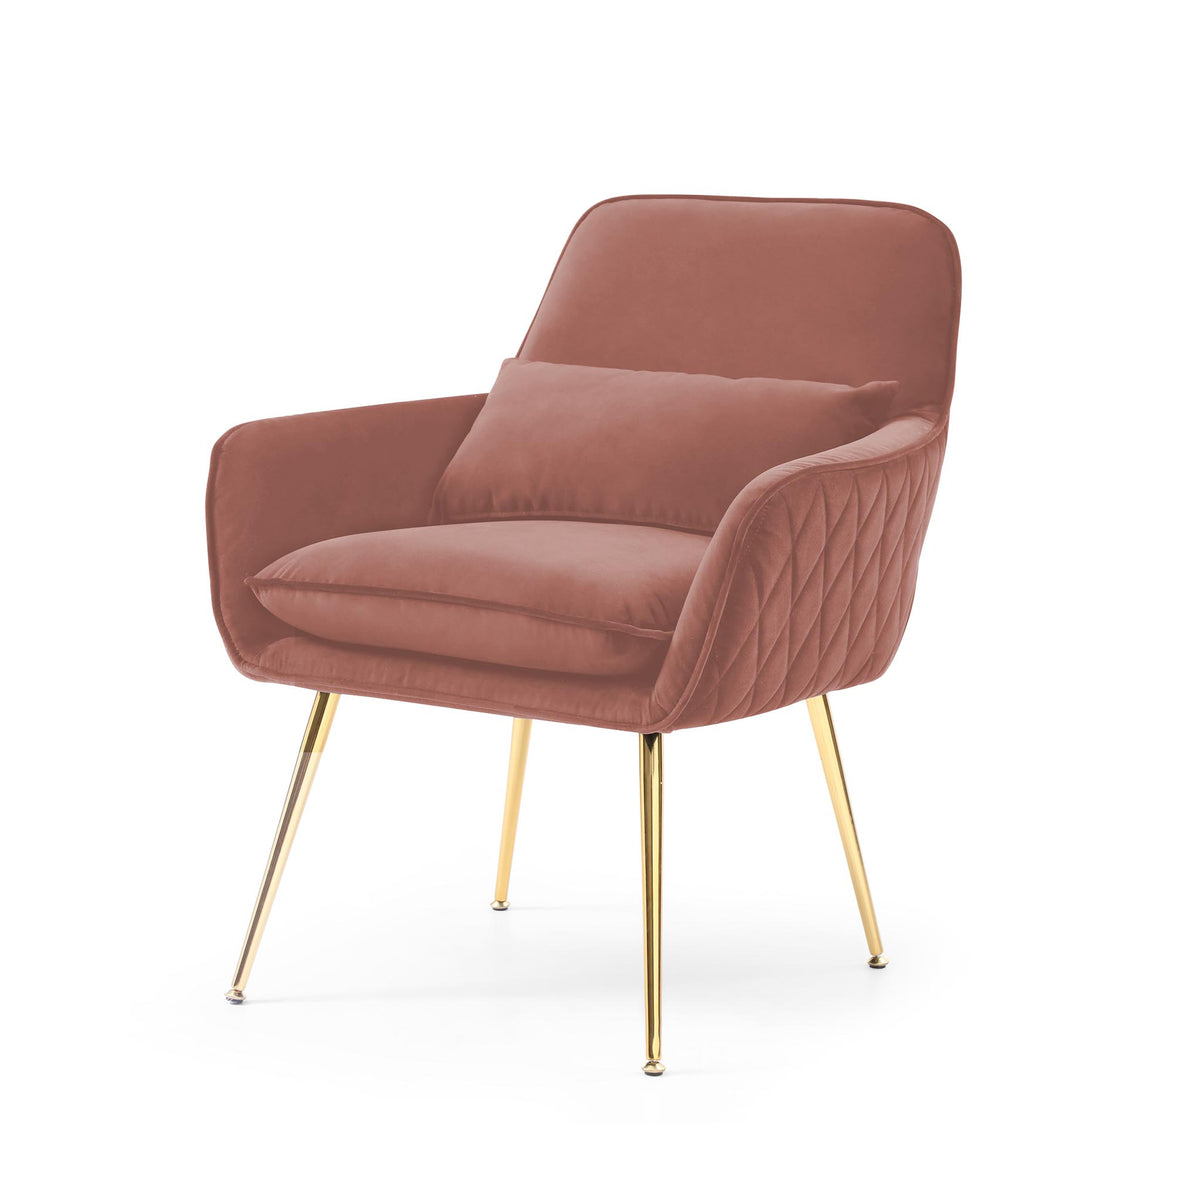 Diamond Blush Velvet Accent Chair with gold legs